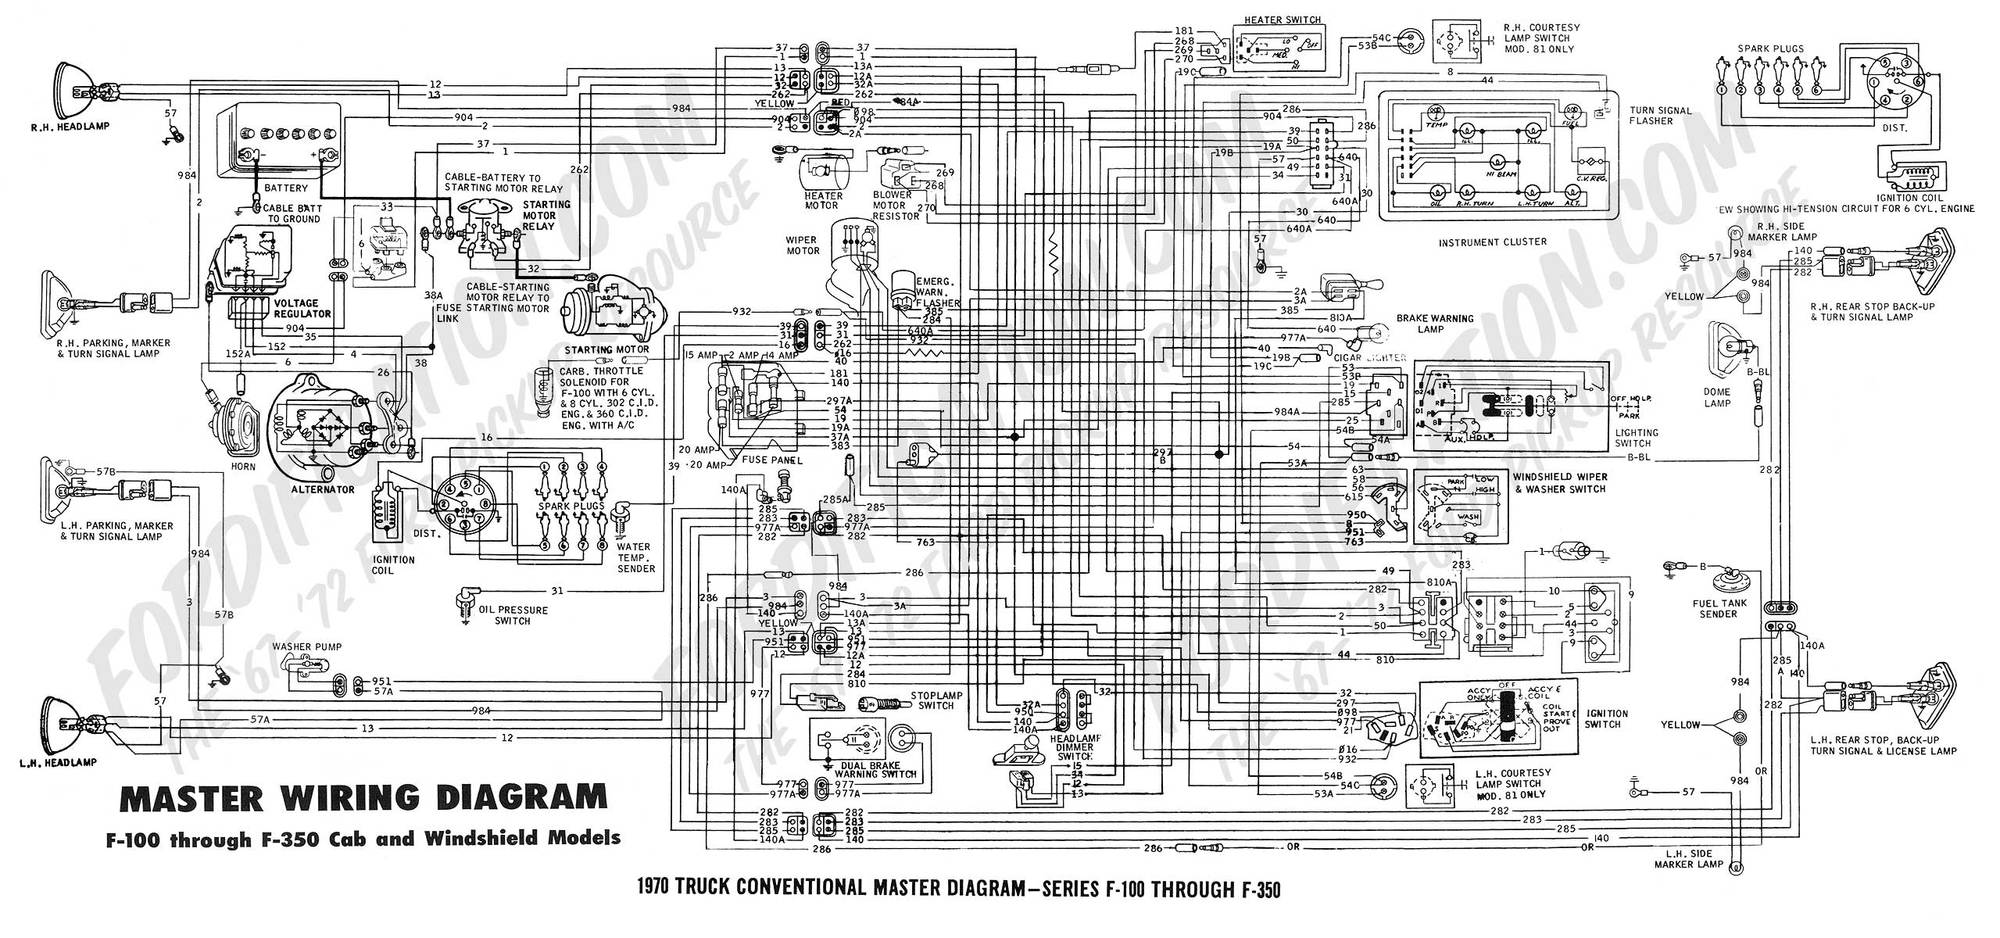 1979 Ford Wiring Diagram With Towing Packs Diagram Wiring Diagrams